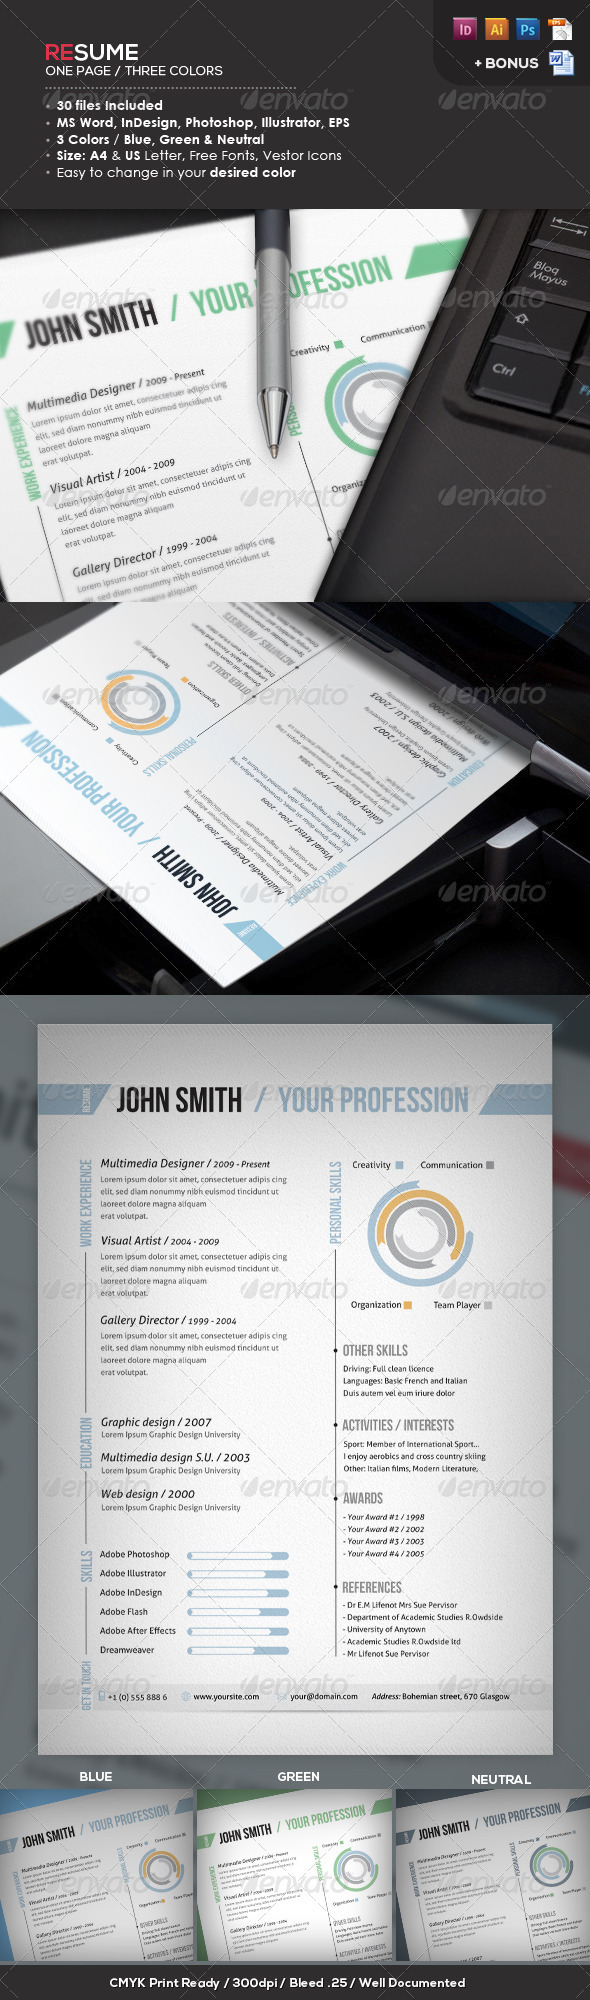 Ready One Page Resume | CV - Resumes Stationery